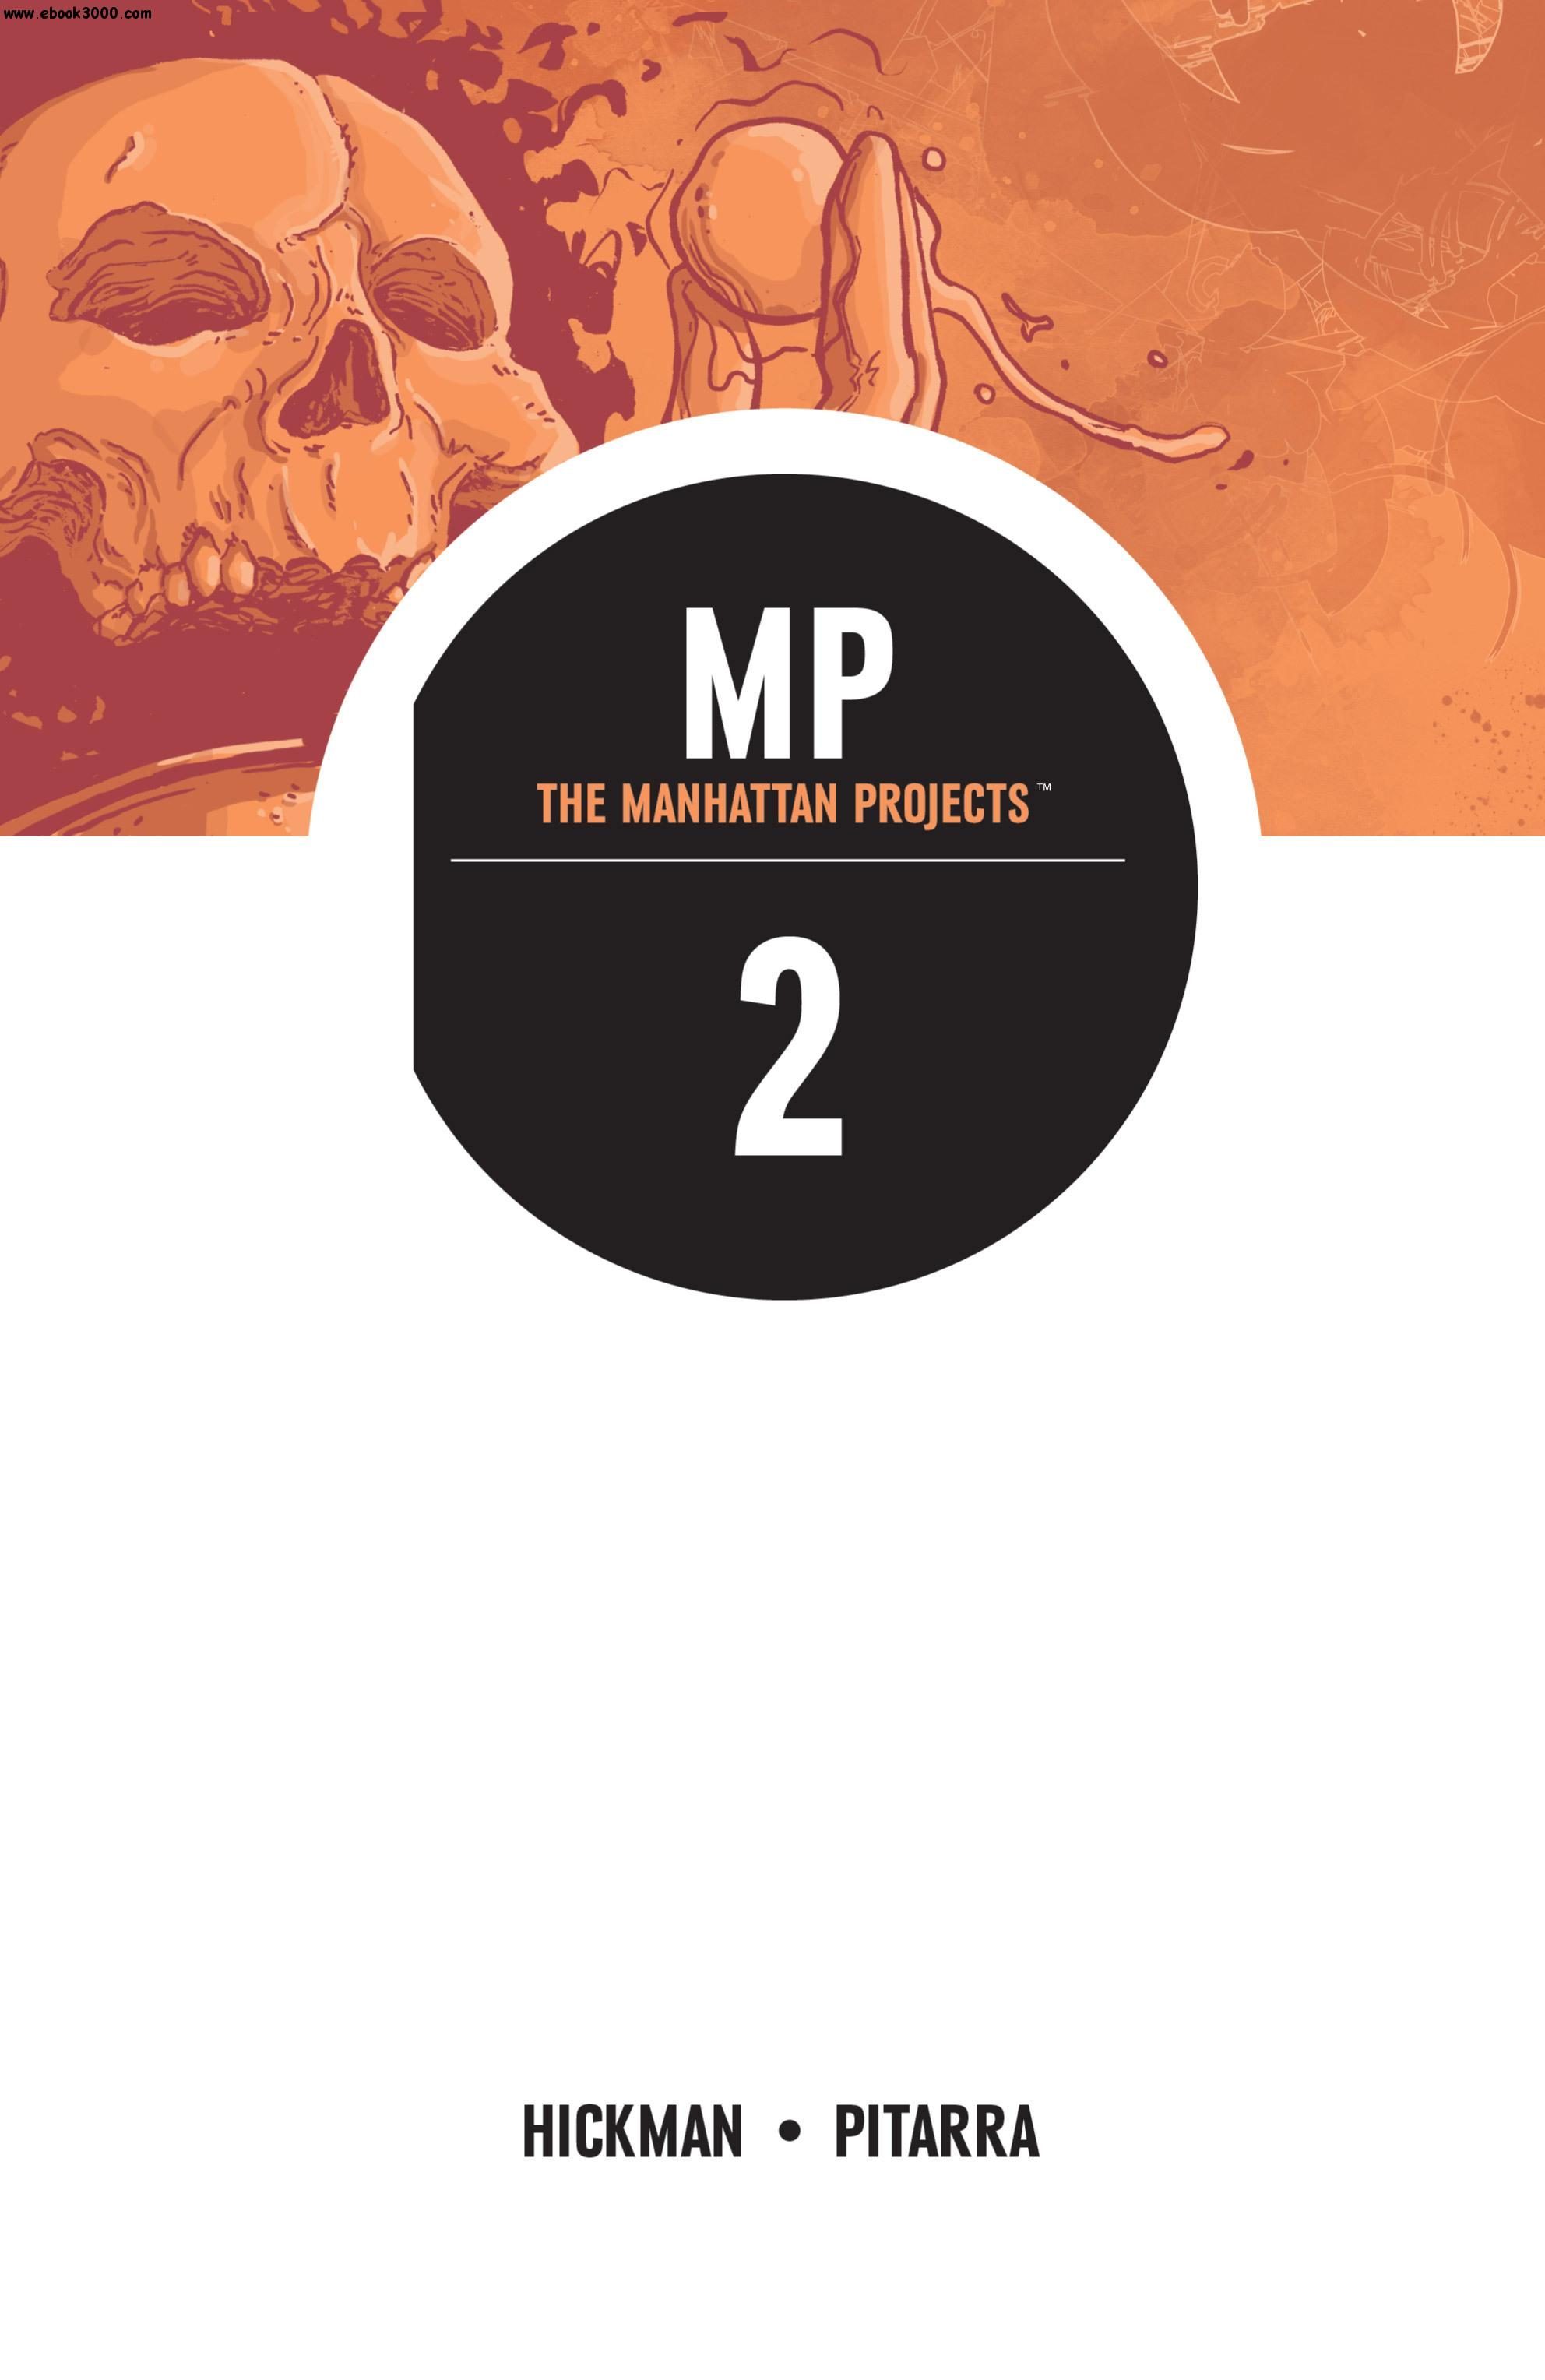 manhattan projects What does the manhattan project tell us about the growing relationship between the government and the scientific community during wwii part 2: immediate effects have your students explore the destruction of nagasaki and hiroshima.